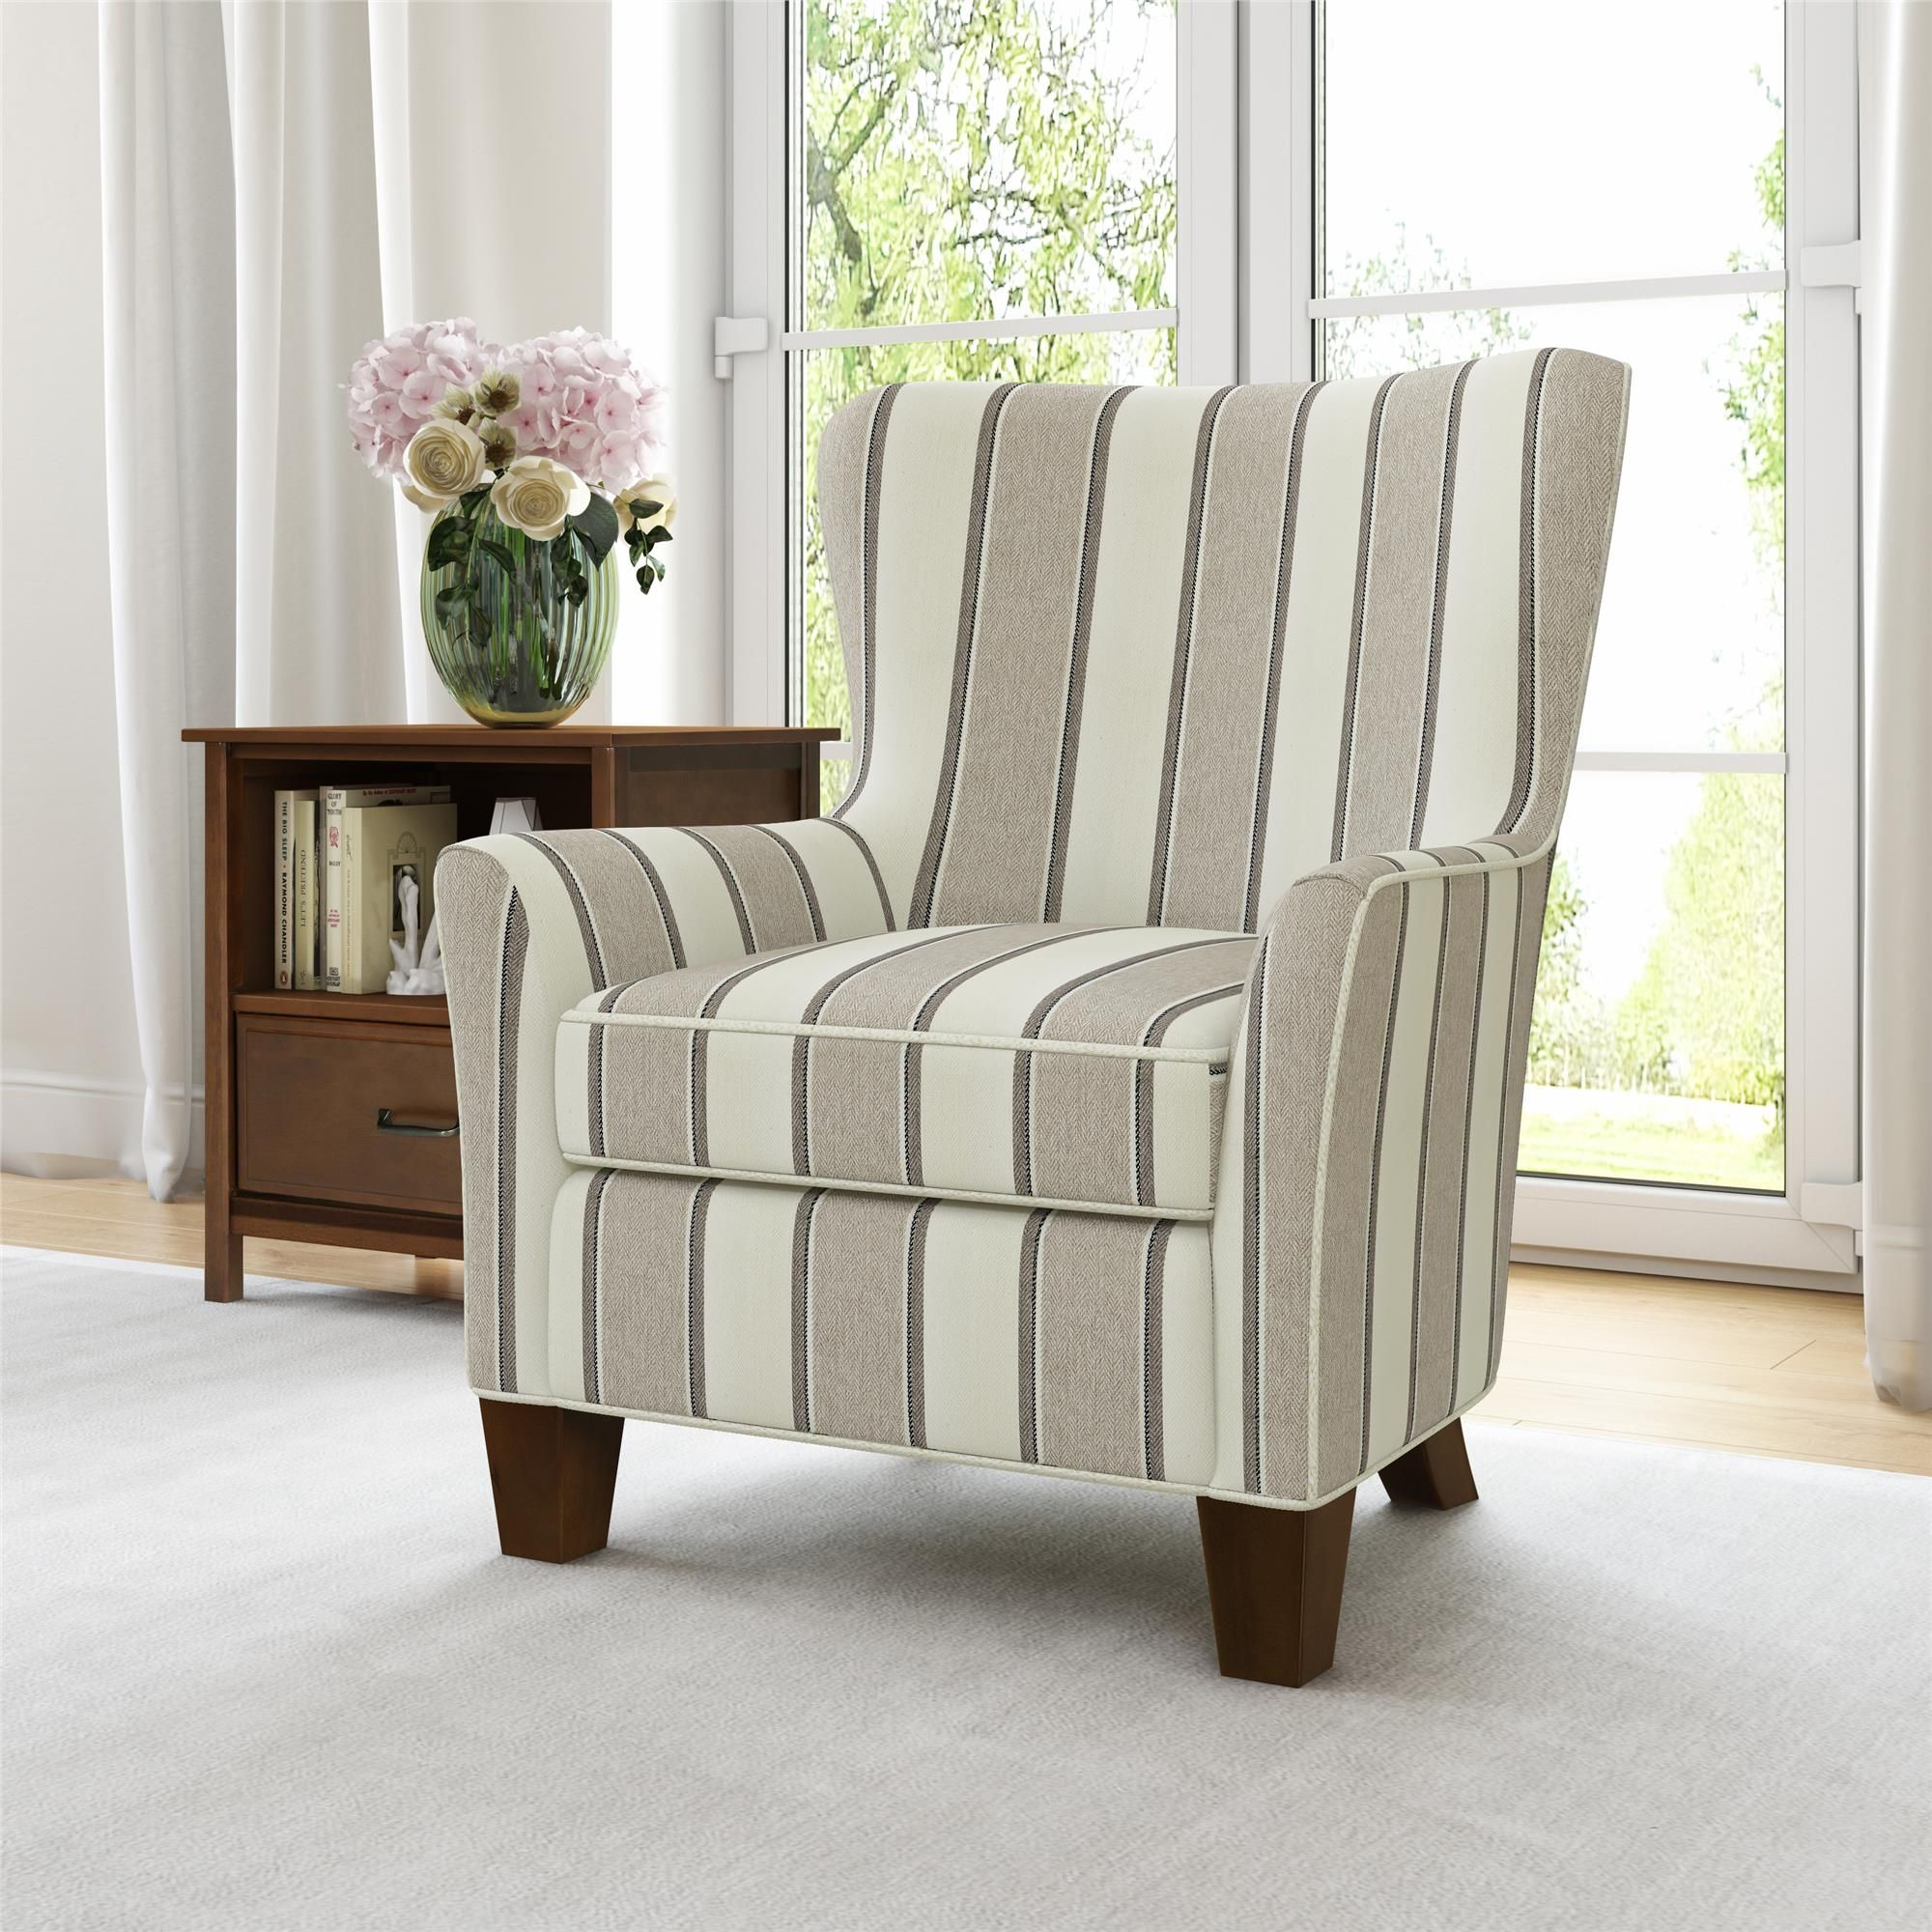 c5ae905a7803ba5562409464d51c67c7 - Better Homes And Gardens Rolled Arm Accent Chair Gray